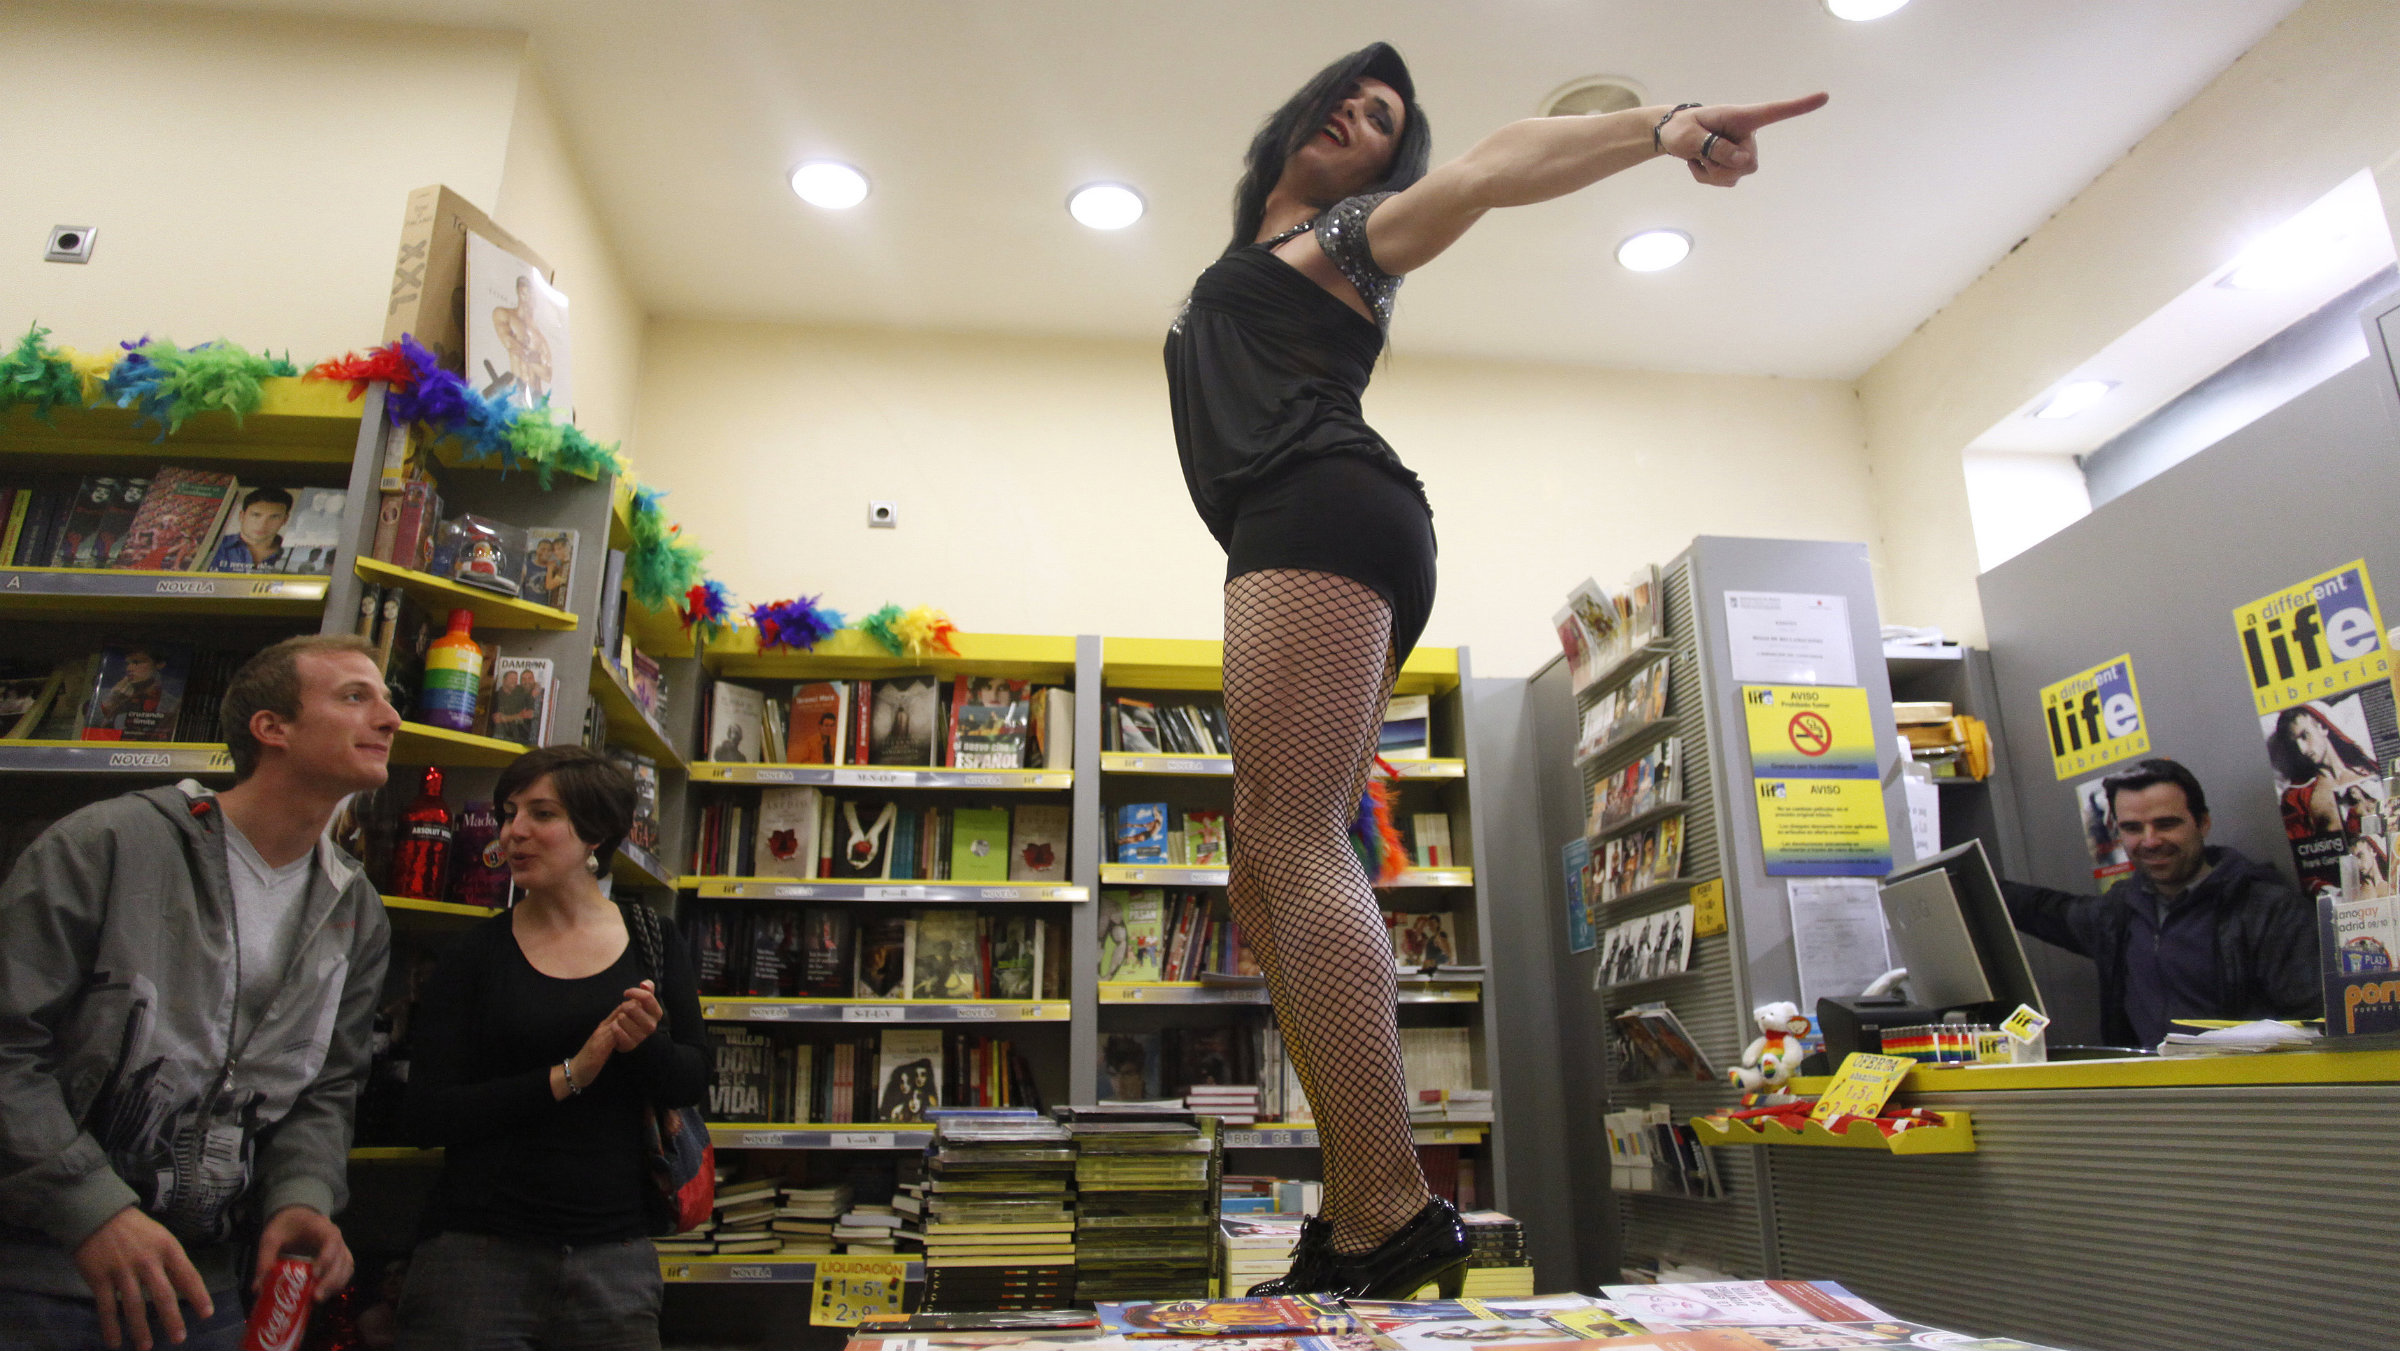 The quirkiness of independent bookstores that Amazon can't replicate.